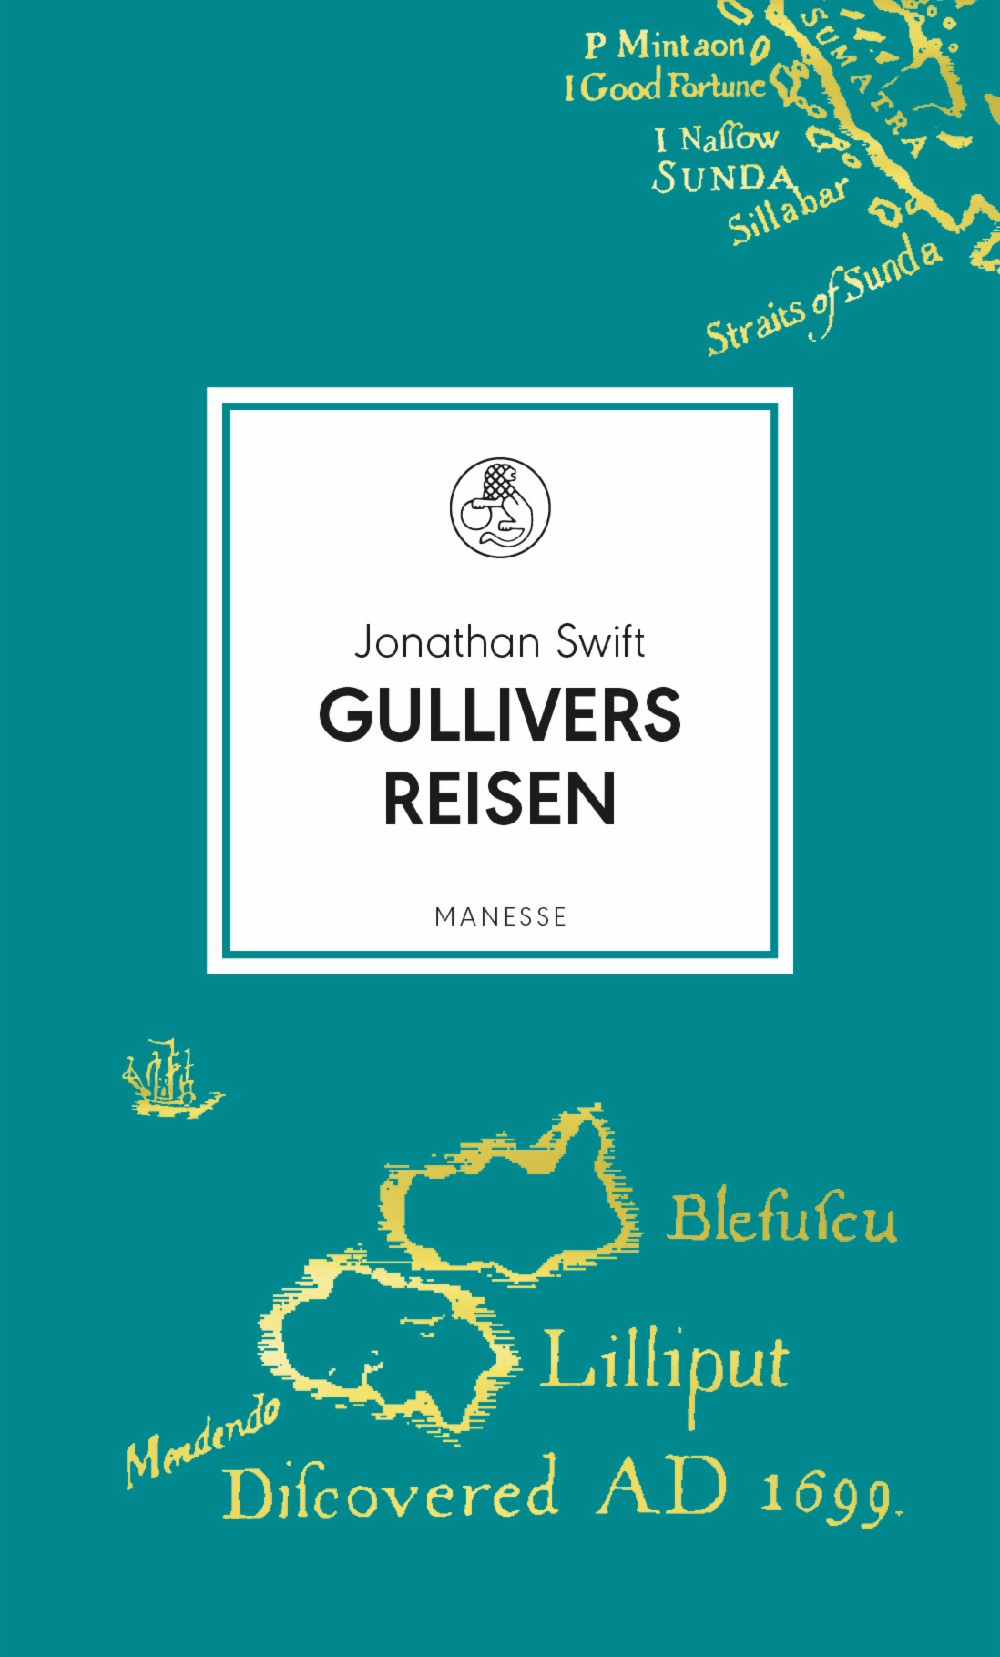 Jonathan Swift Gullivers Reisen